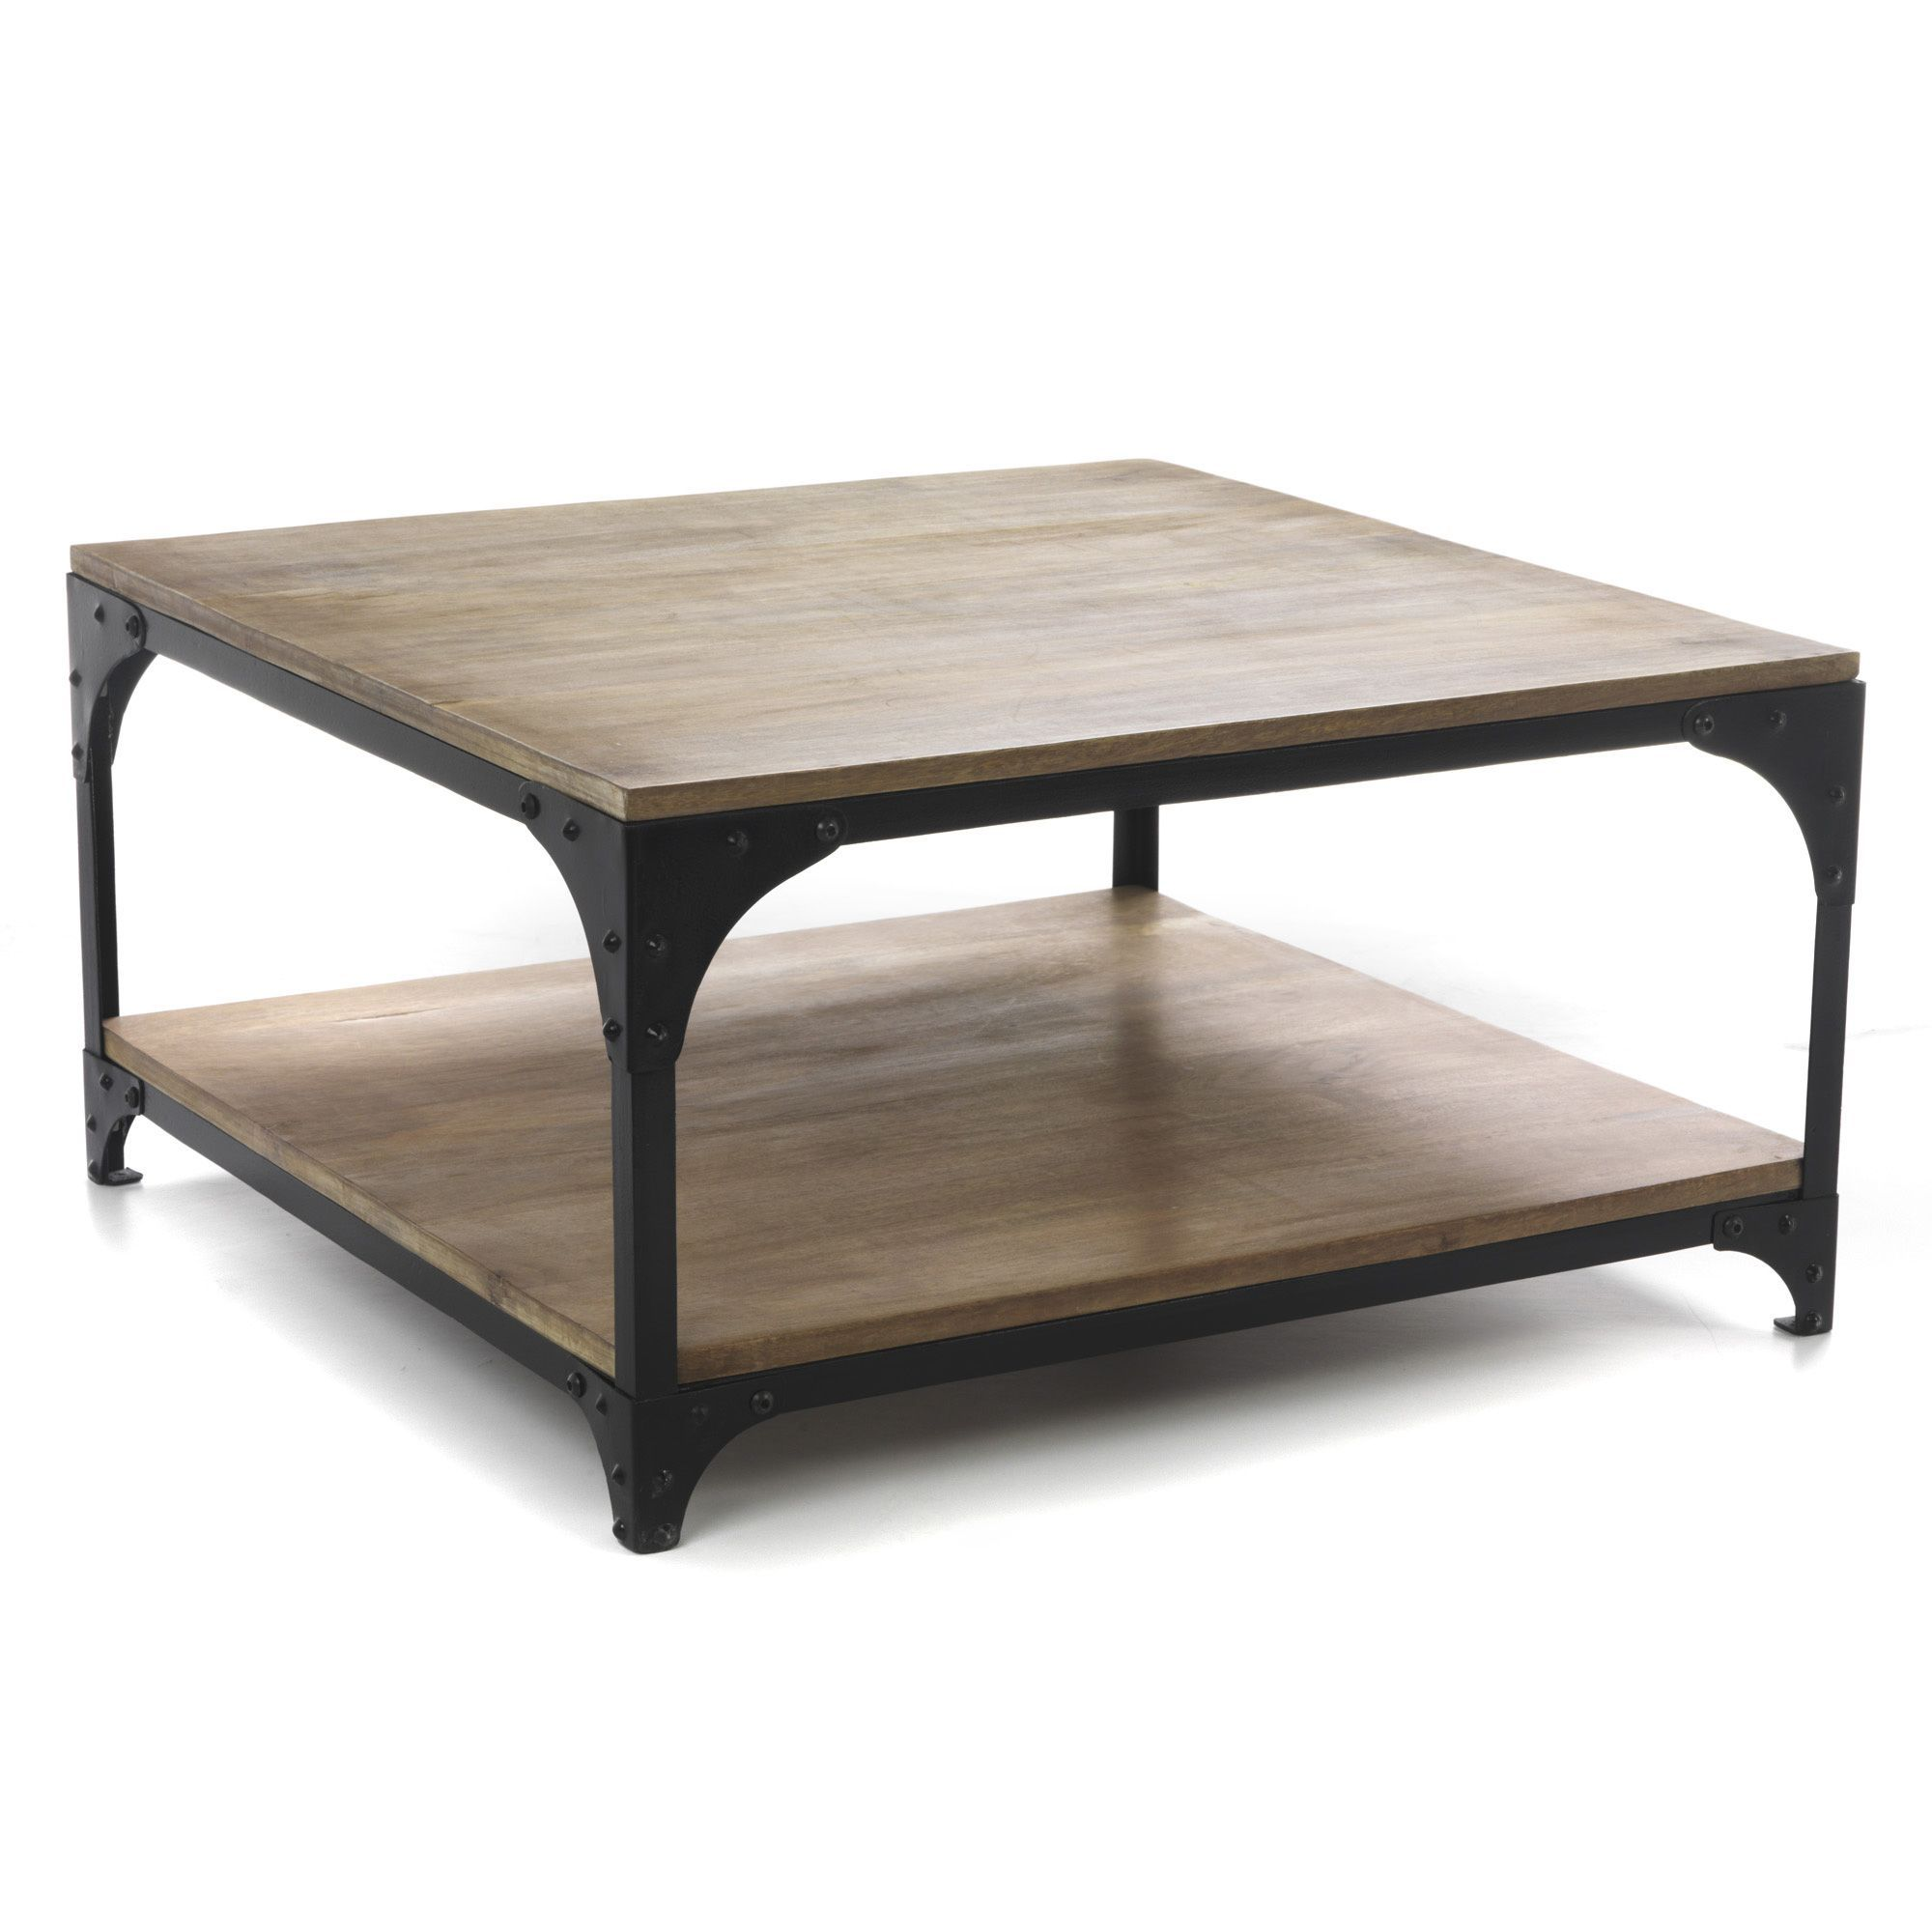 Table basse carr e industrielle naturel new ately les tables basses tab - Table a manger industrielle ...